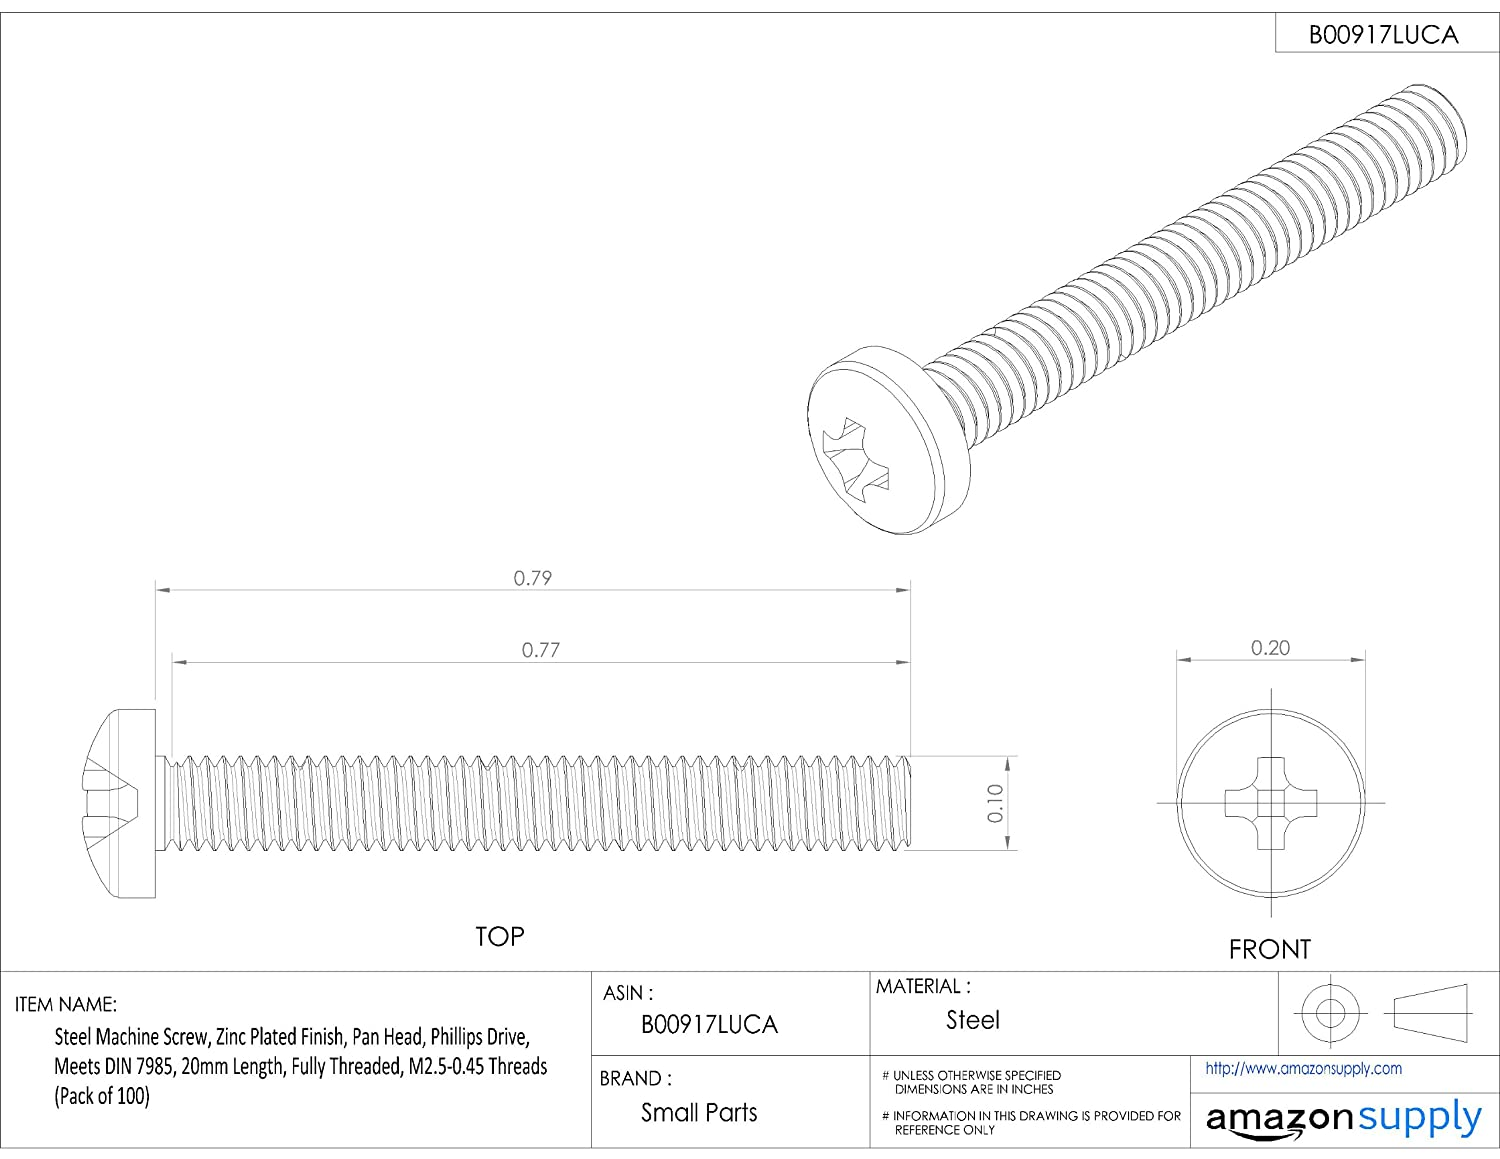 Phillips Drive Steel Machine Screw M2.5-0.45 Metric Coarse Threads Small Parts B00917LUCA 20mm Length Pack of 100 Fully Threaded Zinc Plated Finish Meets DIN 7985 Pan Head